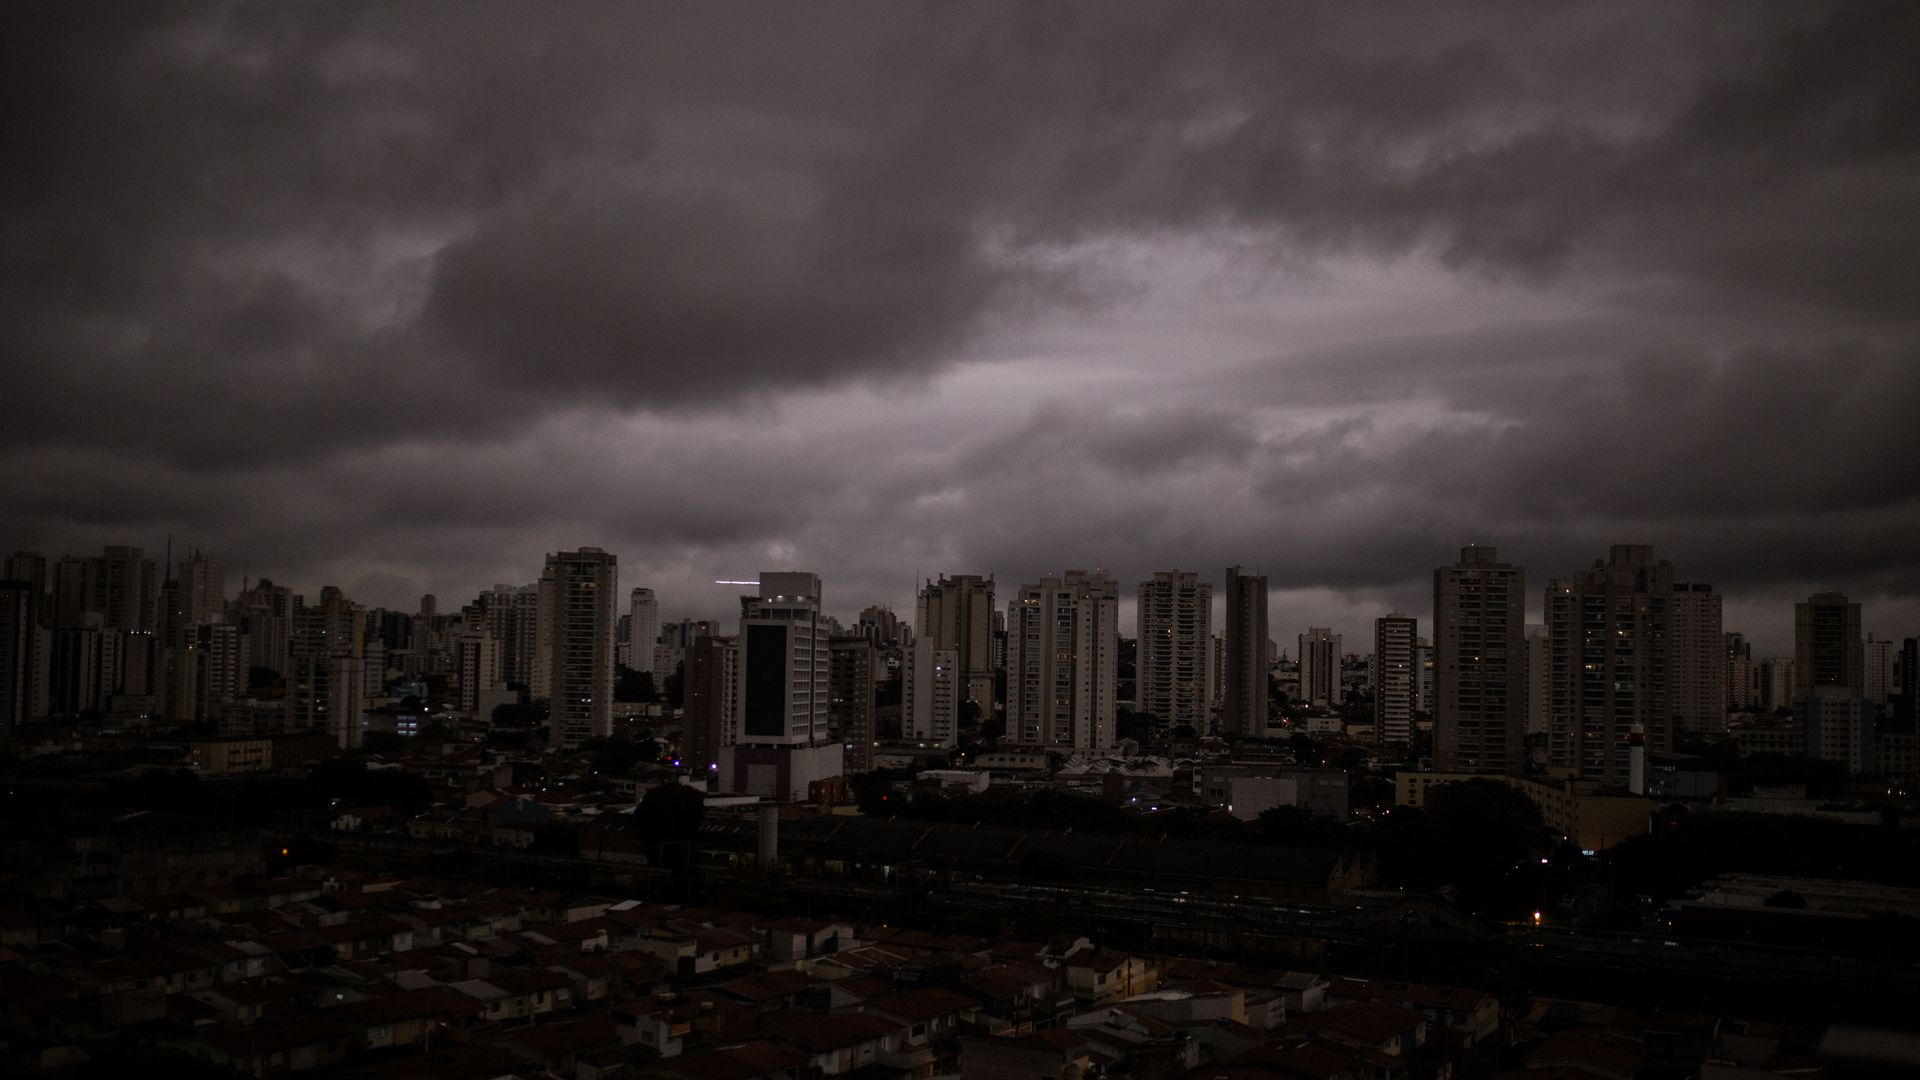 In this image, a darkened and cloudy skyline is seen over a dark city